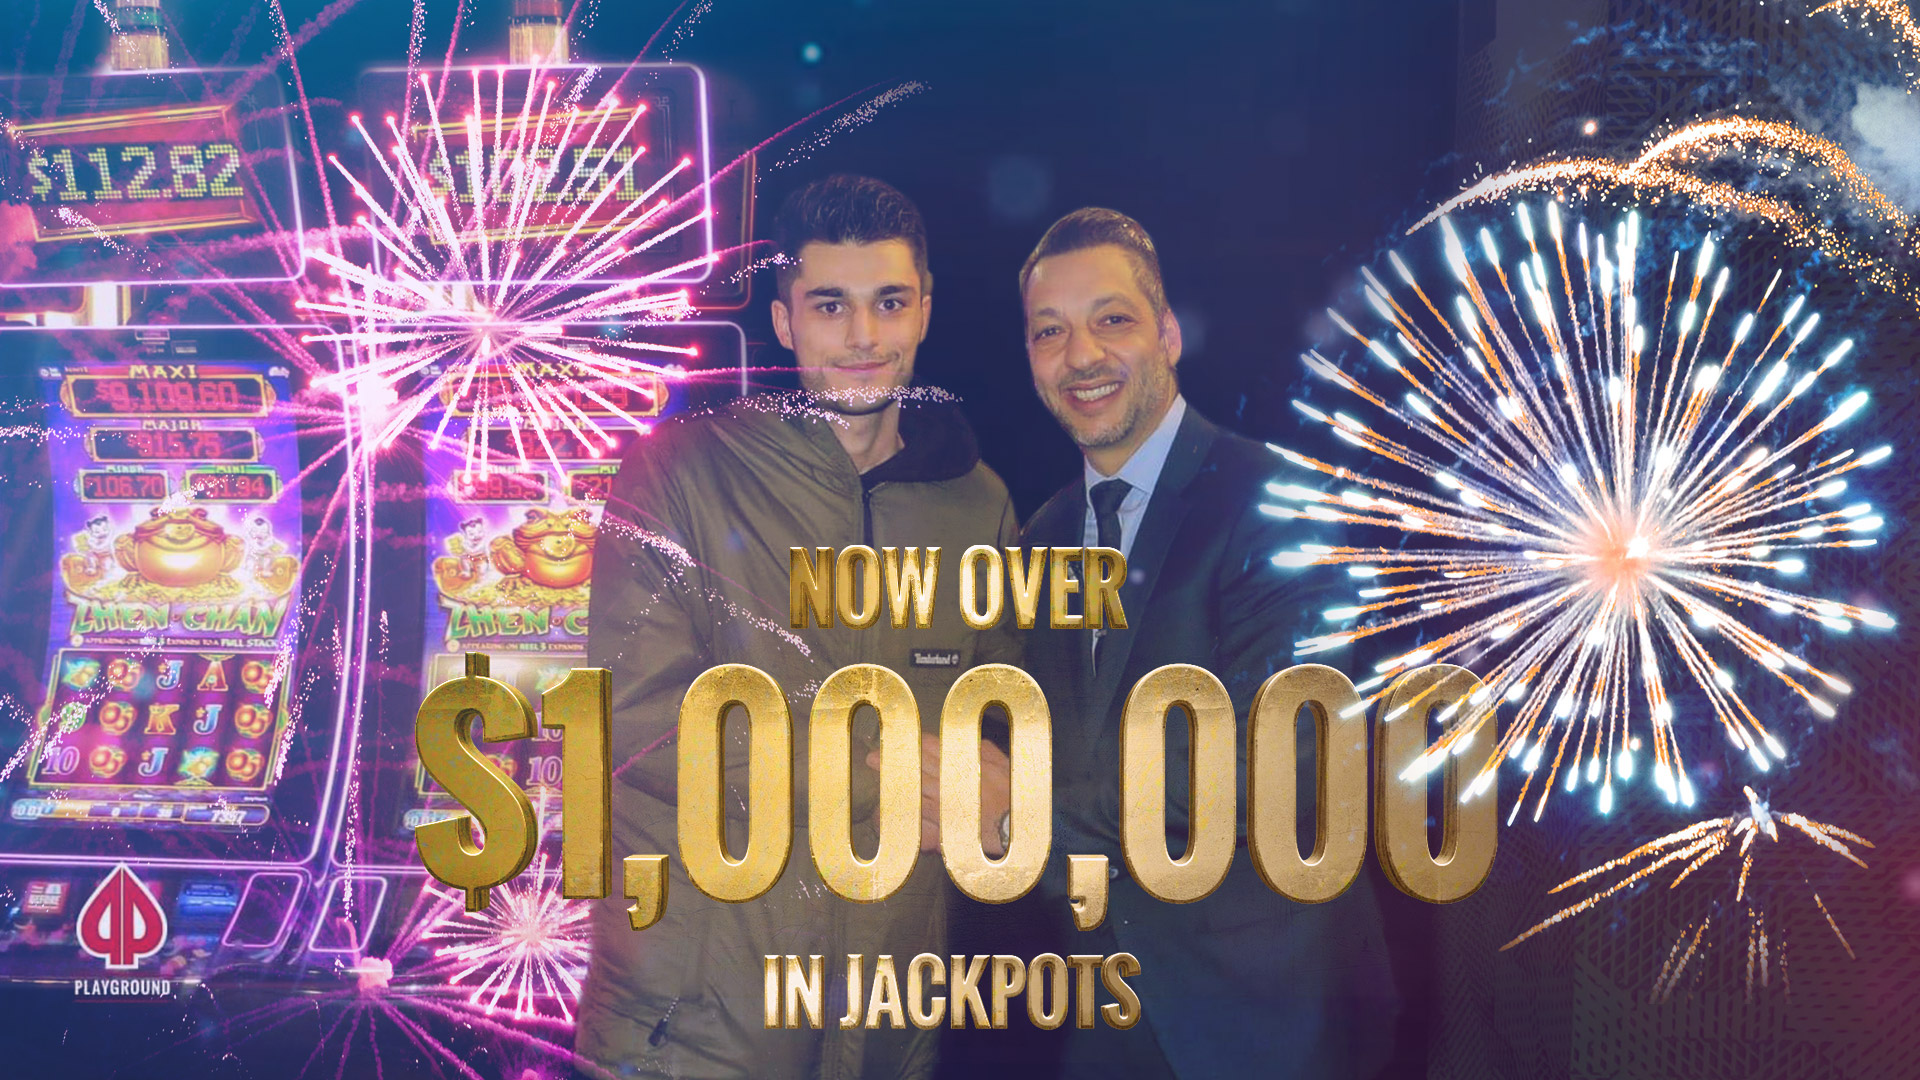 $1,000,000 in Jackpots awarded!